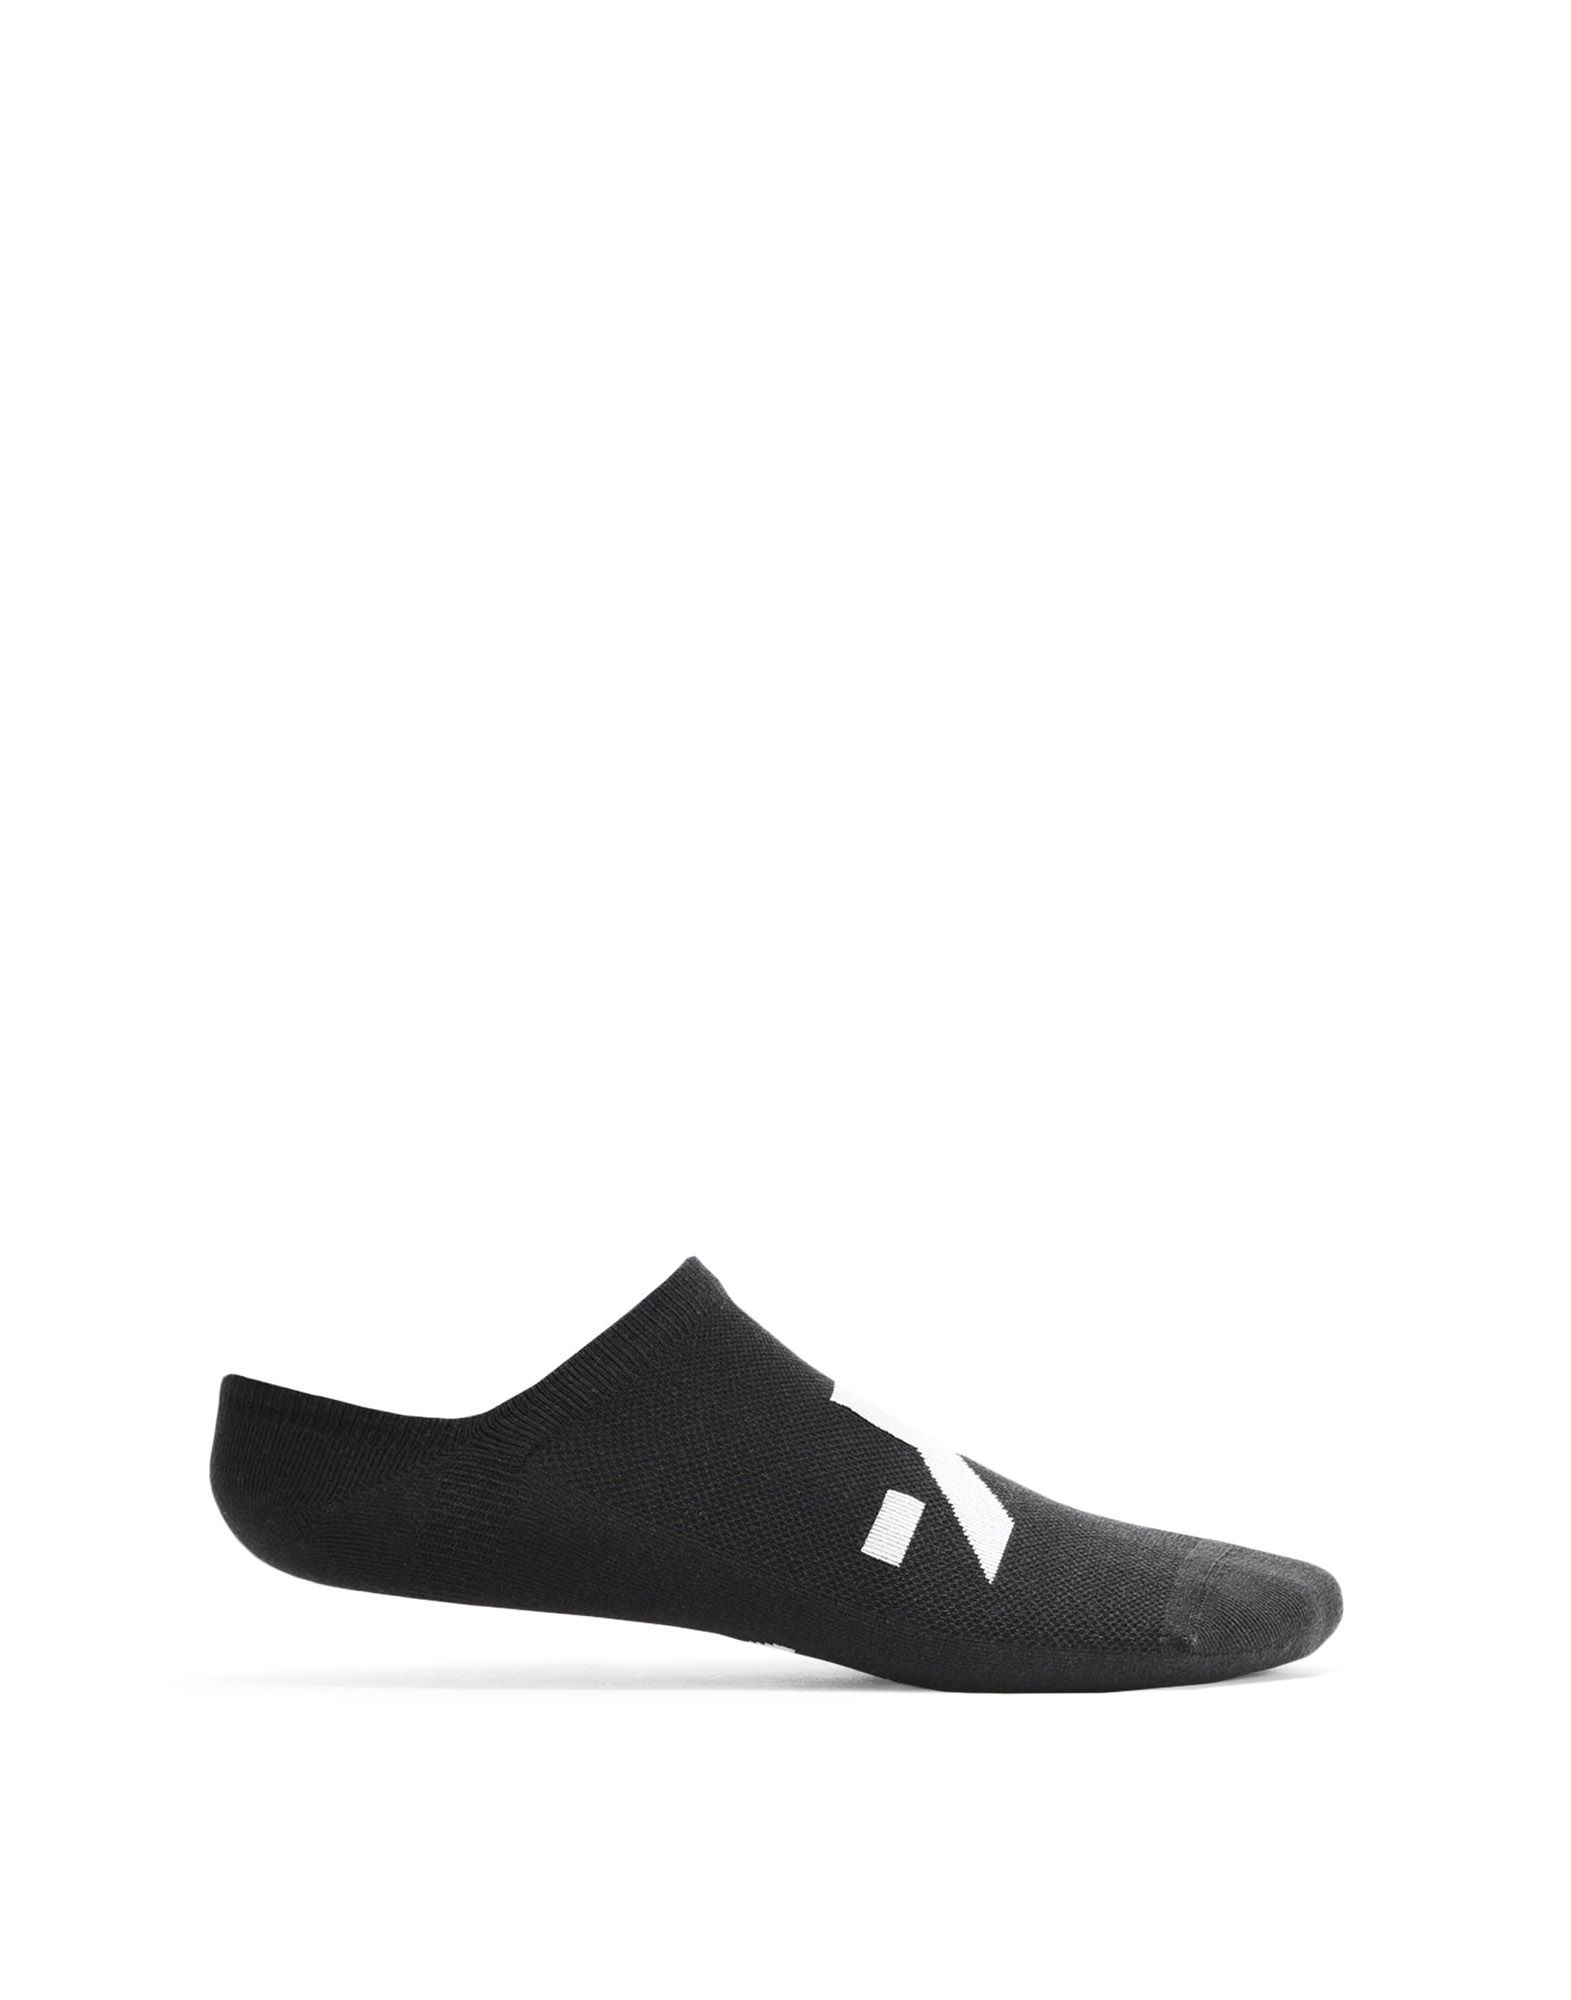 Y-3 Y-3 INVISOCKS Invisible Sock E f